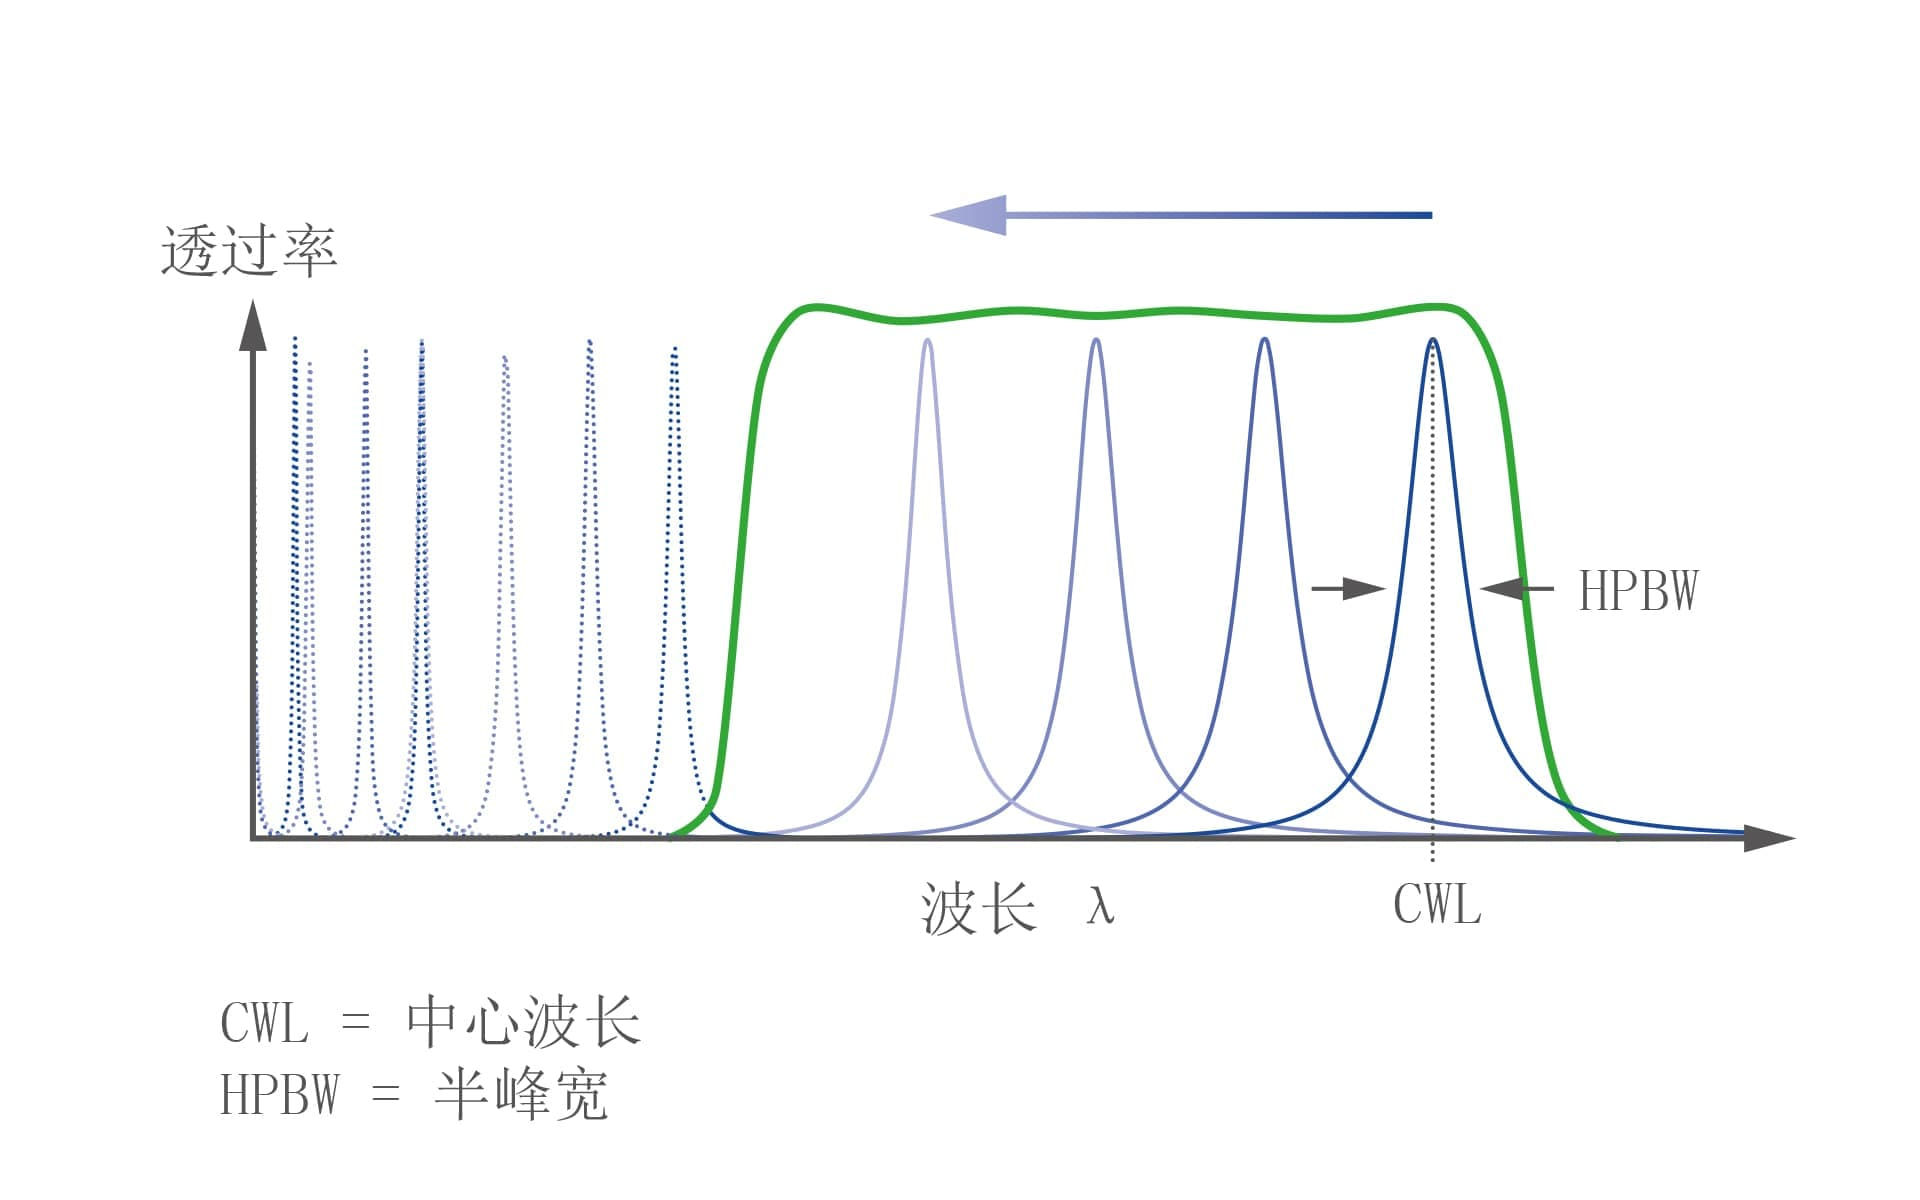 Transmittance spectra and key parameters of a FPF